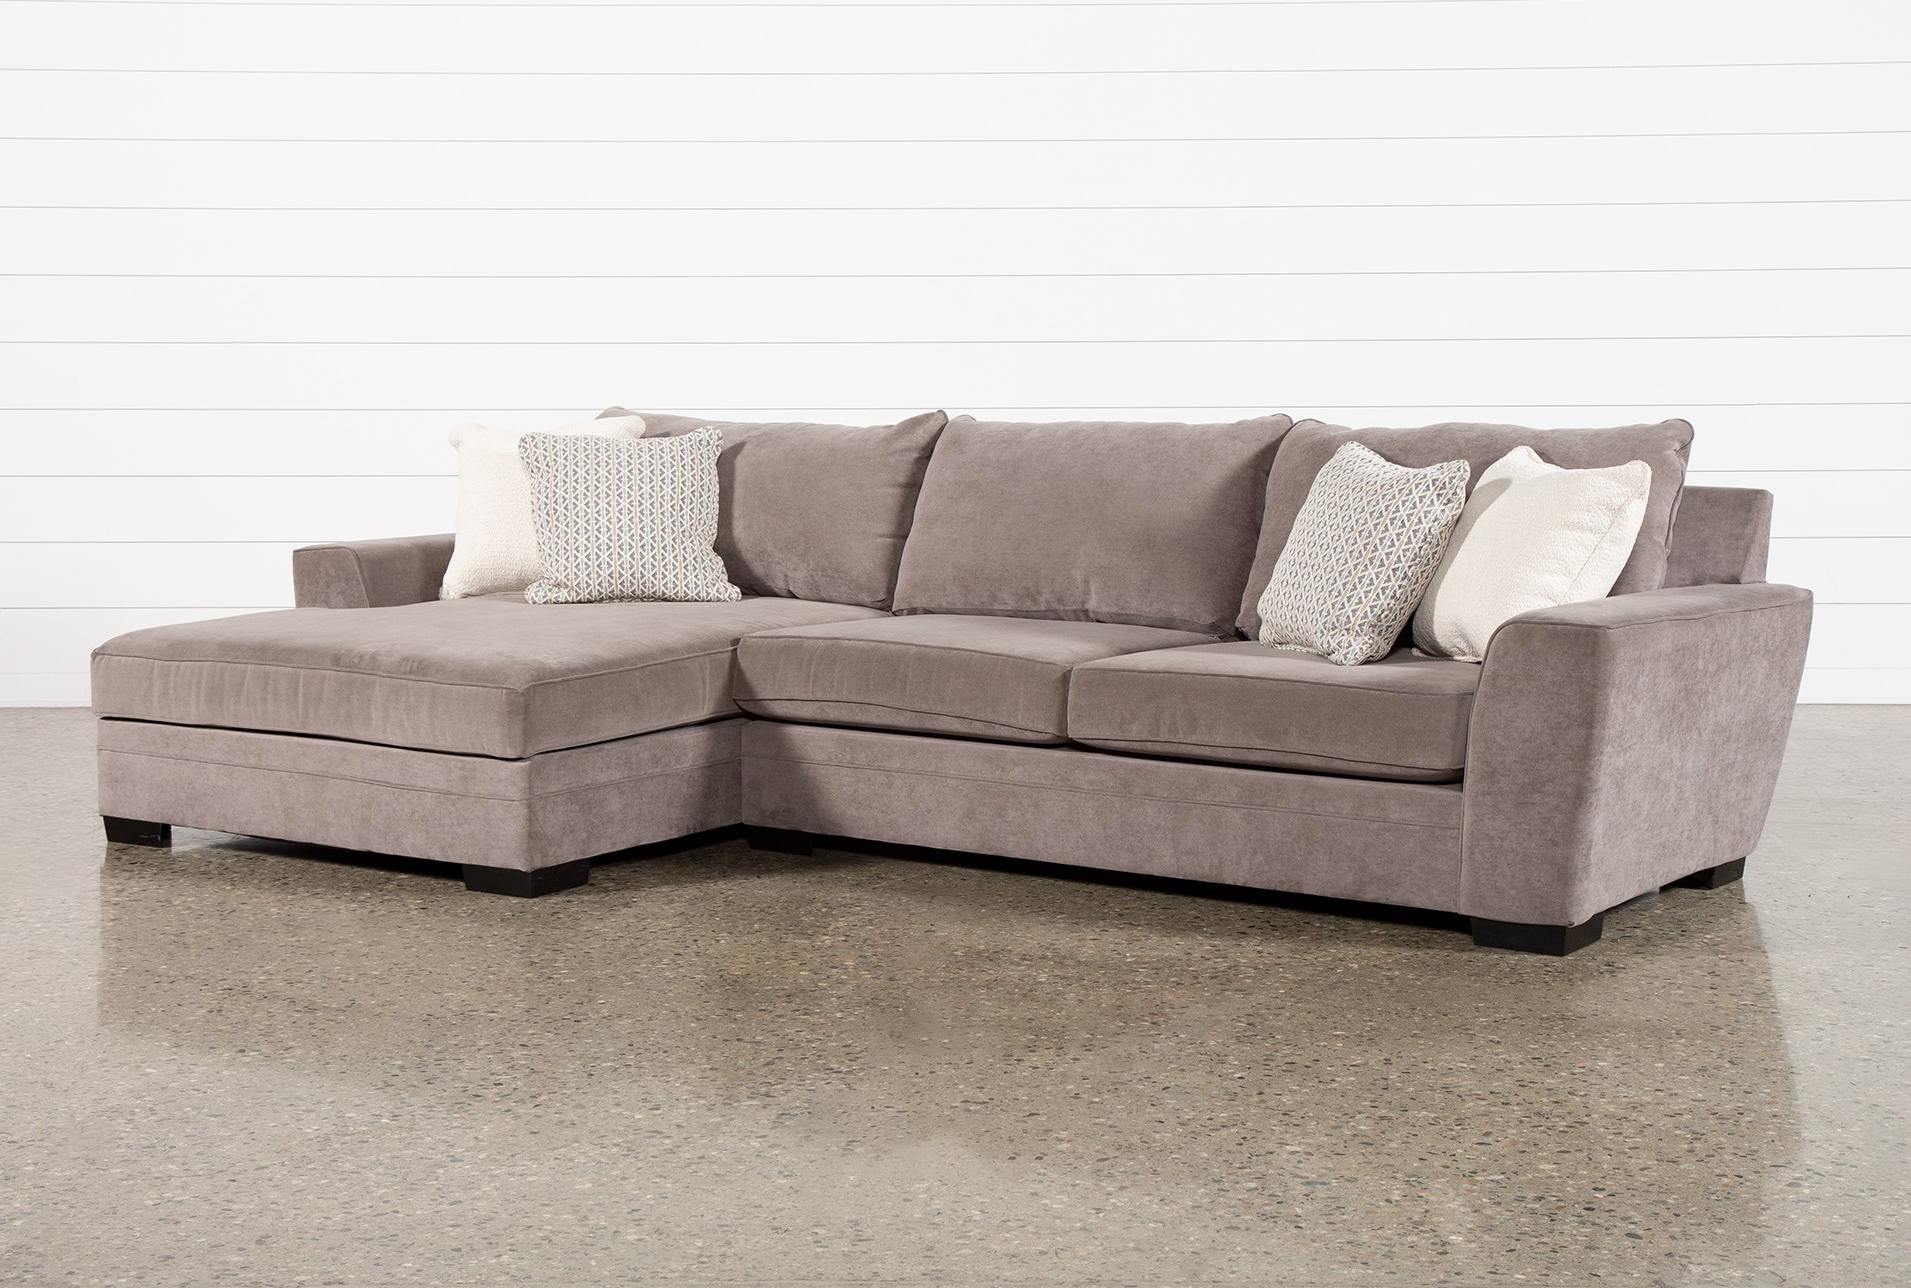 Delano 2 Stück Sectionals mit Laf Oversized Chaise